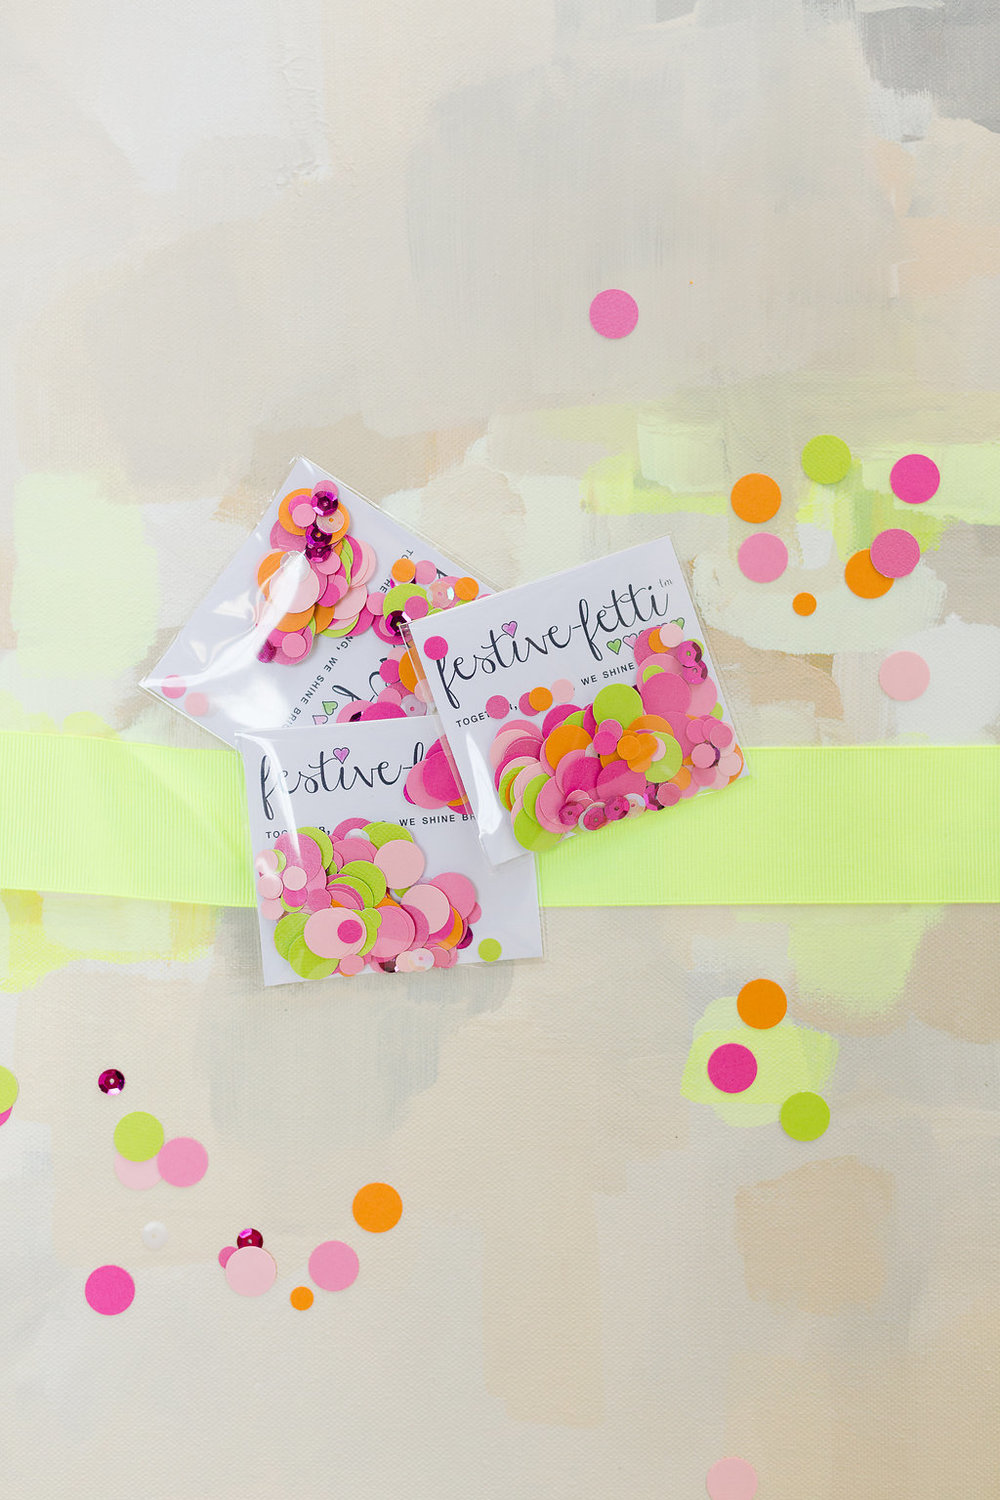 Neon Wedding festive-fetti™ Confetti / by The Marketplace on Brenda's Wedding Blog / photo by Jessica Haley Photography